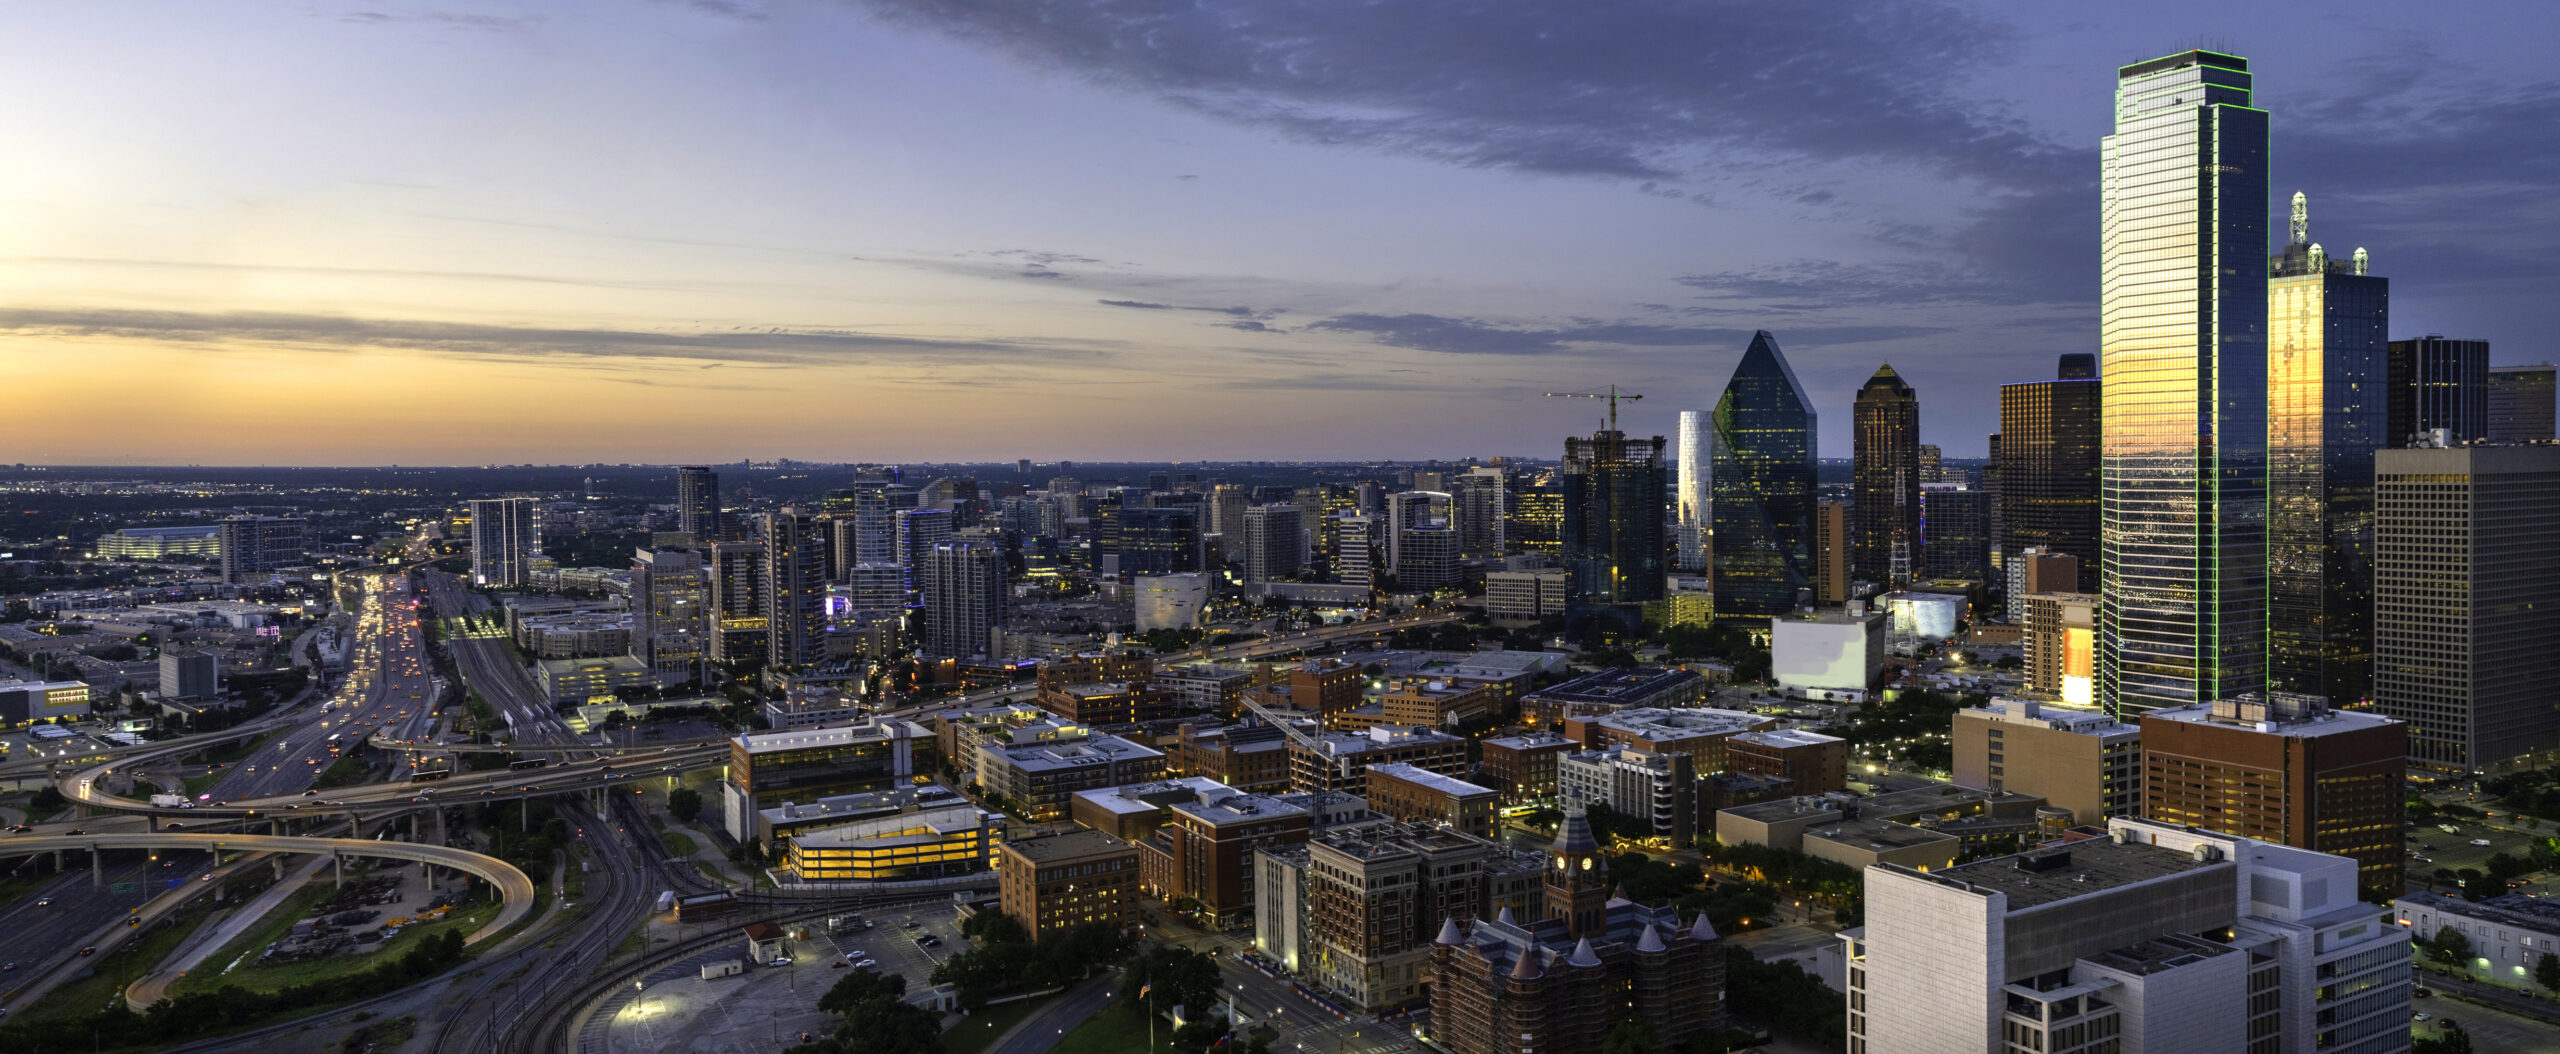 Dallas Texas evening skyline panorama